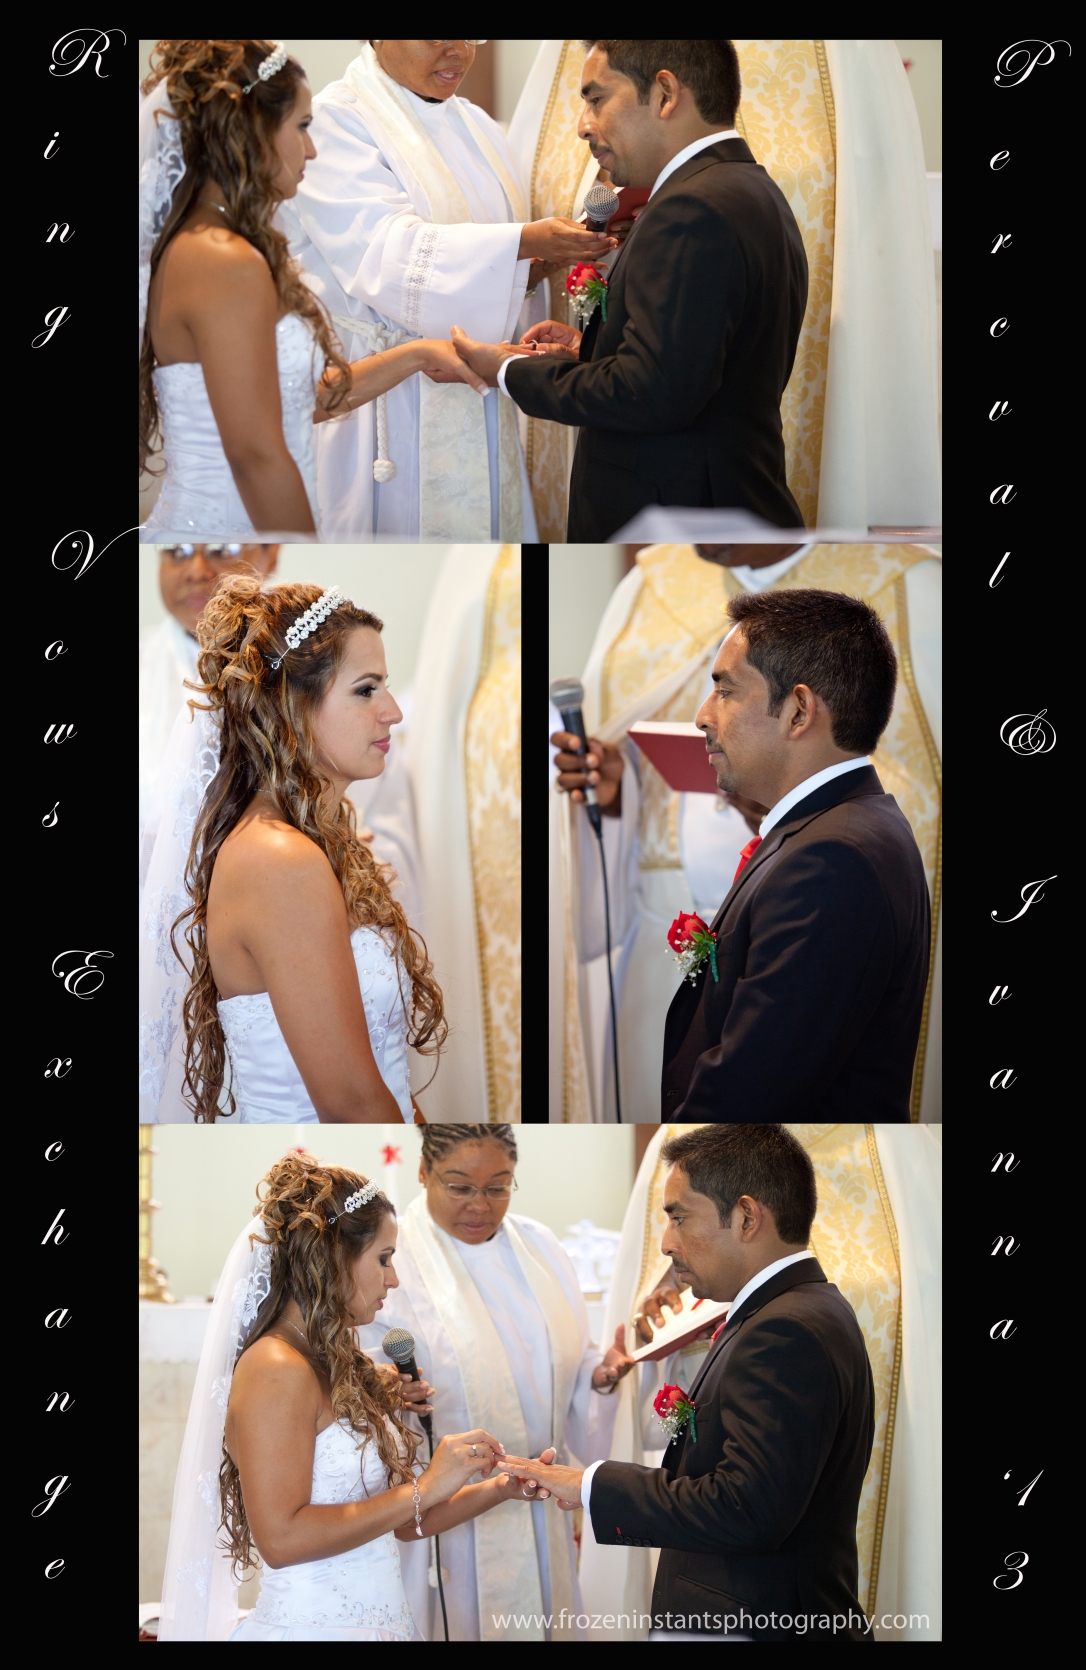 Vows and Ring exchange